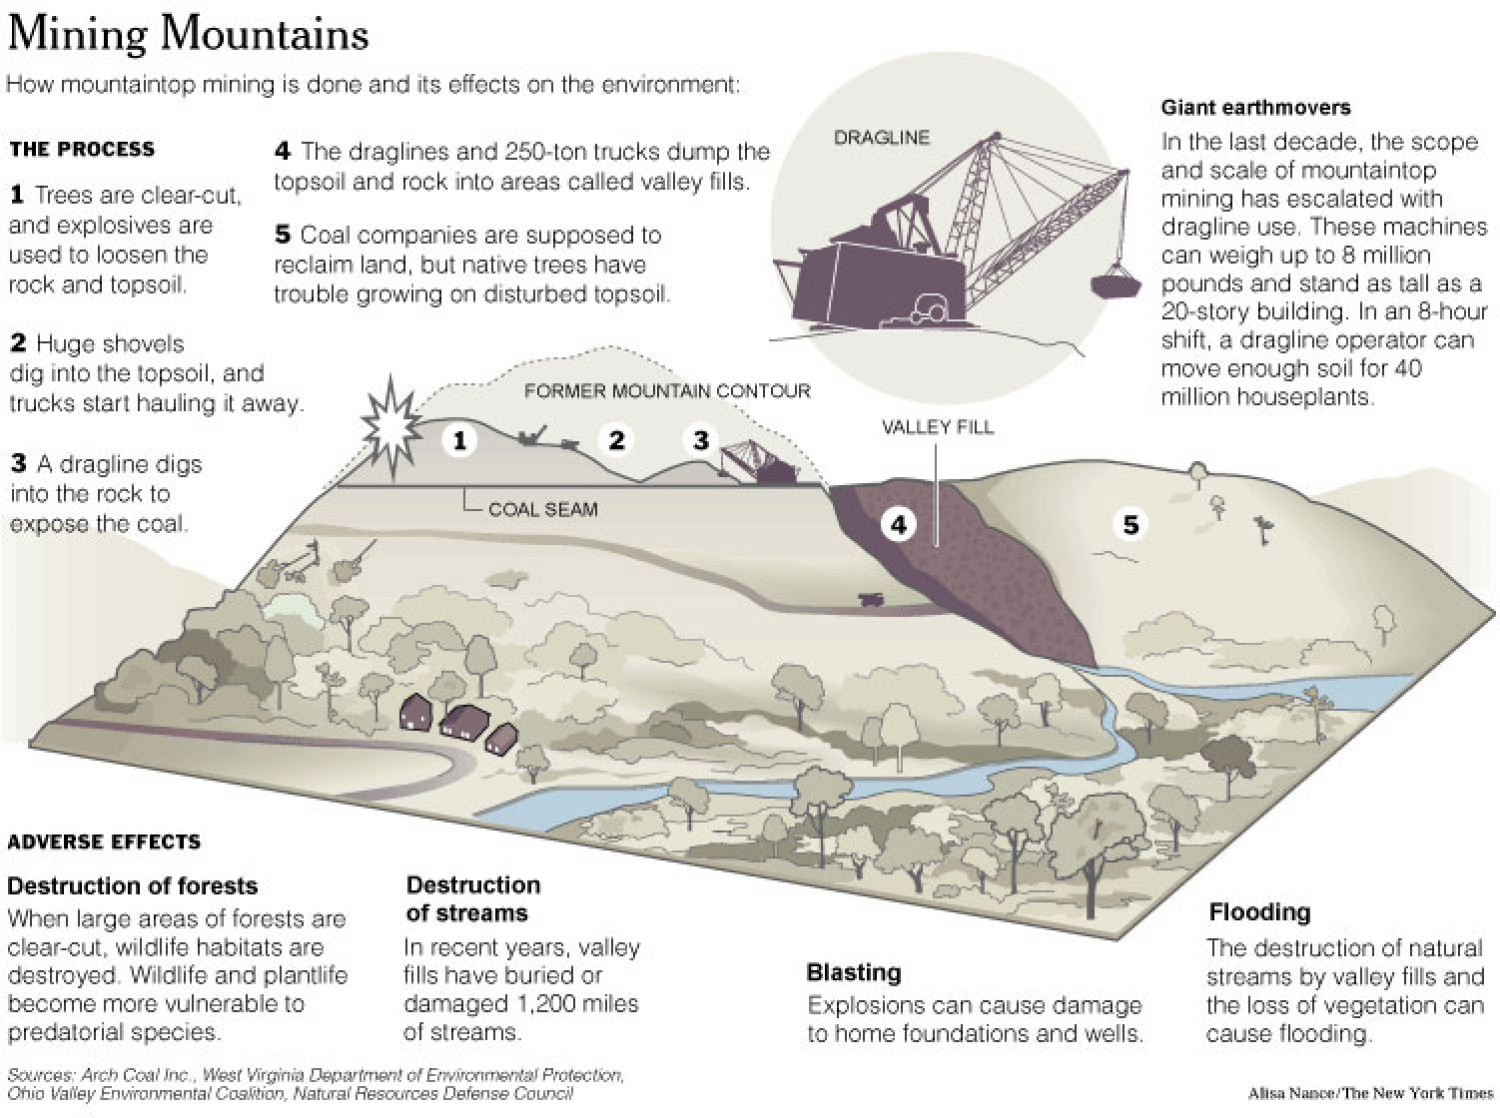 Mining Mountains Infographic